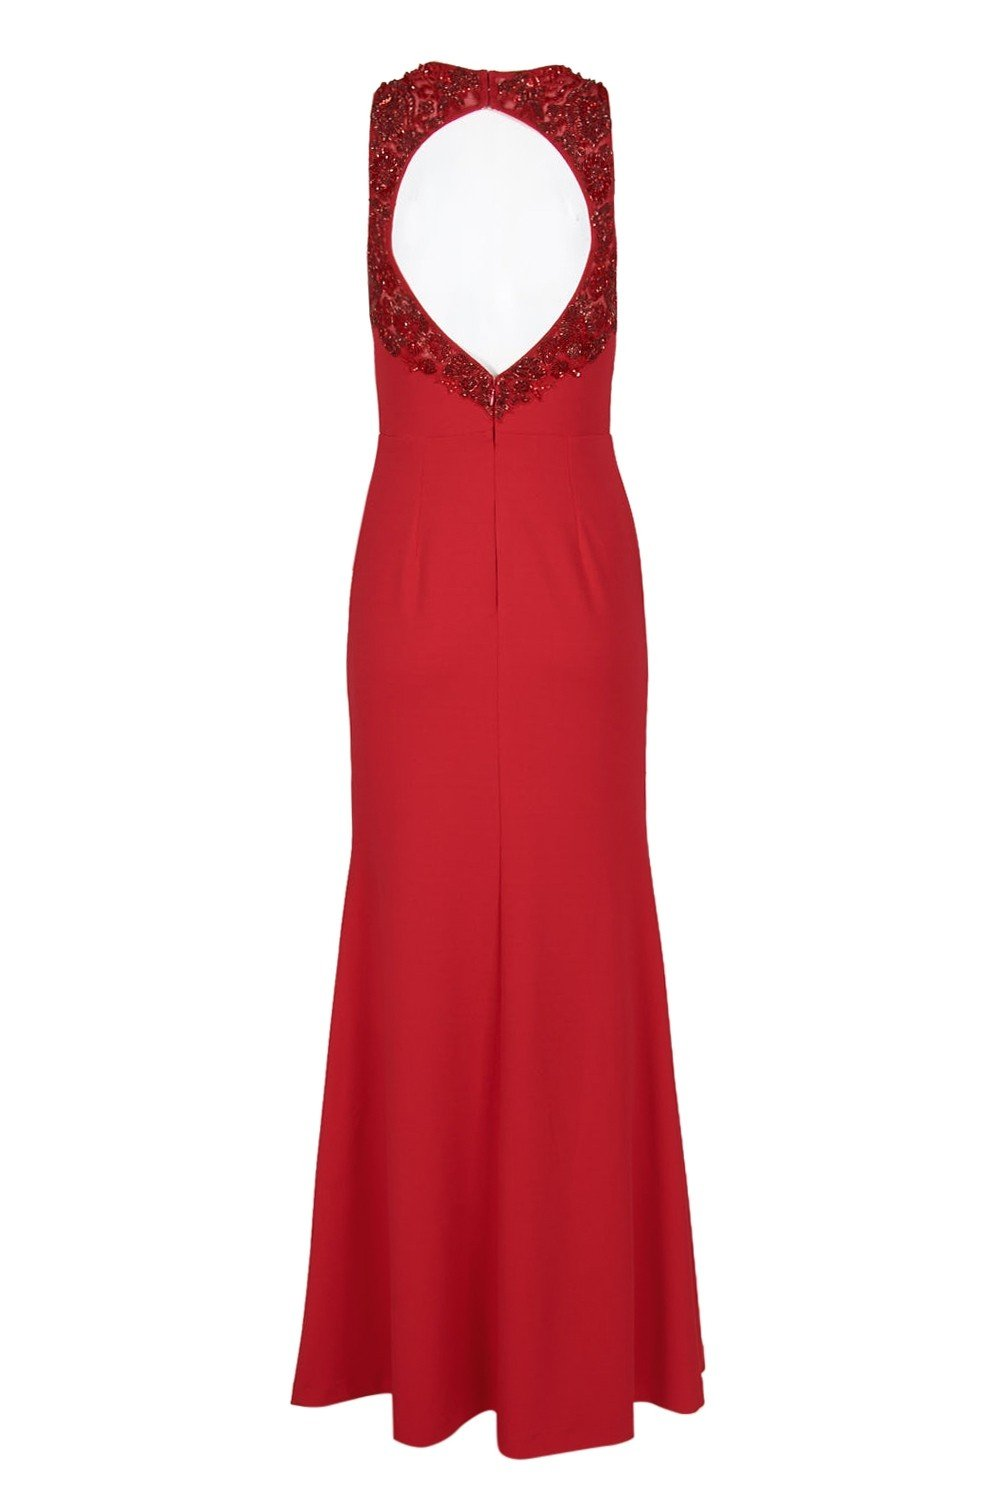 Aidan Mattox - MD1E202834 Embellished Halter V-neck Trumpet Dress In Red